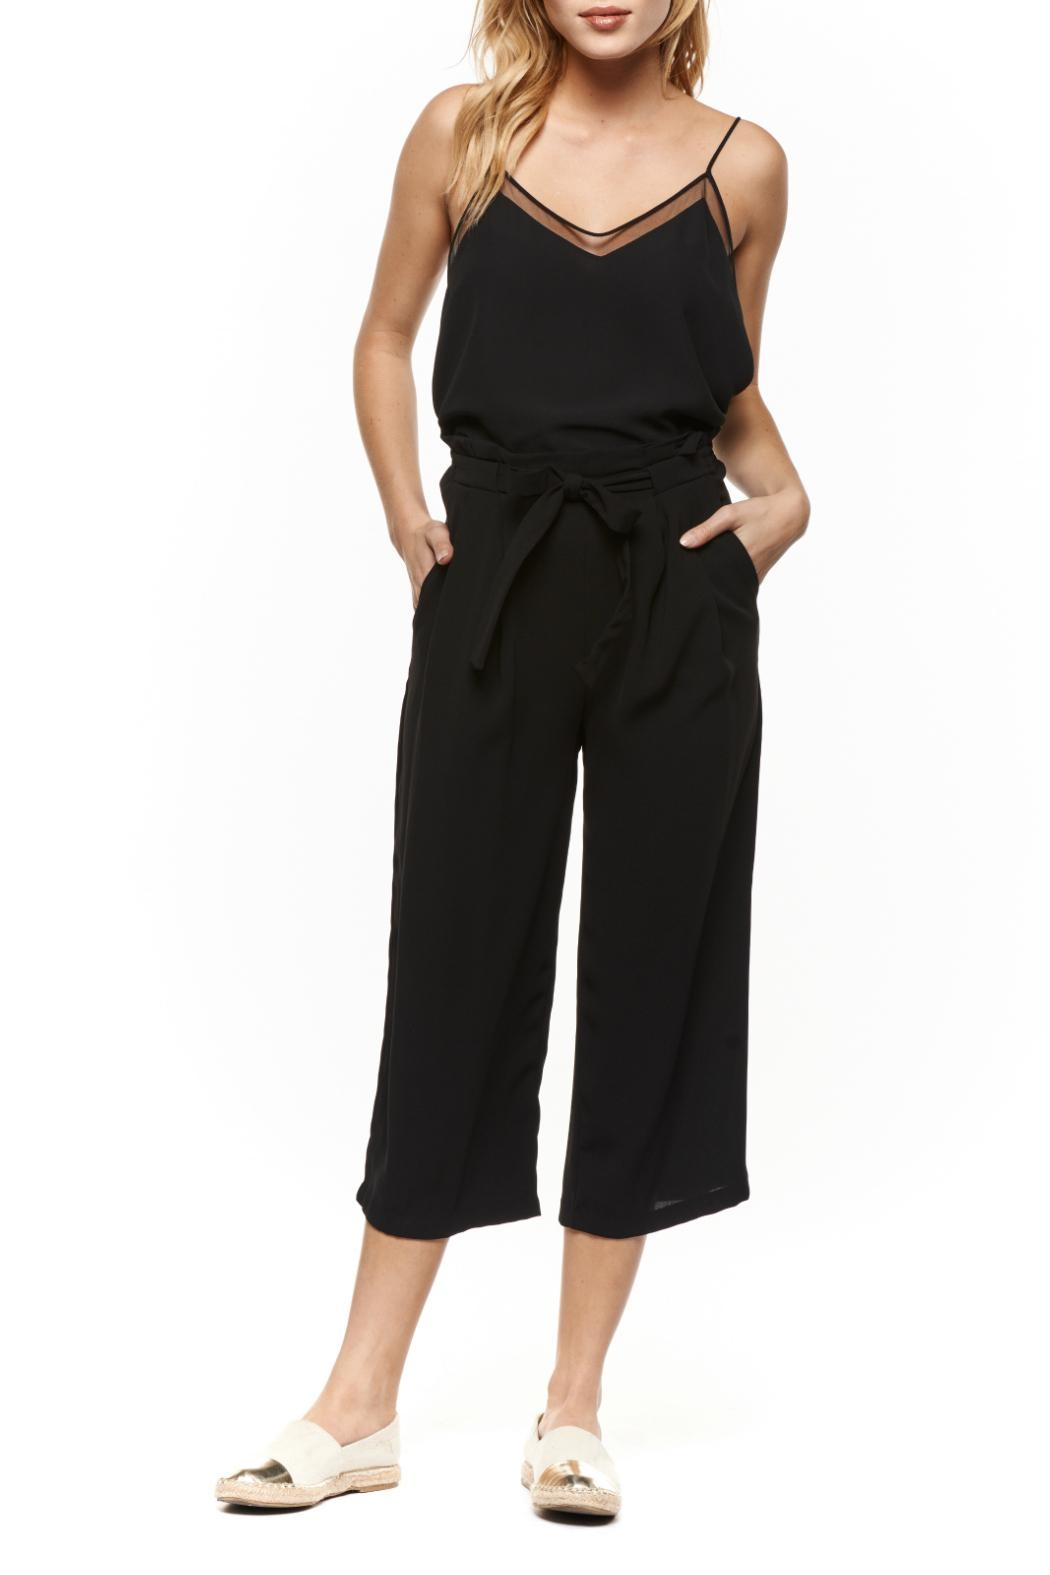 Dex Black Cropped Palazzo Pants - Front Cropped Image